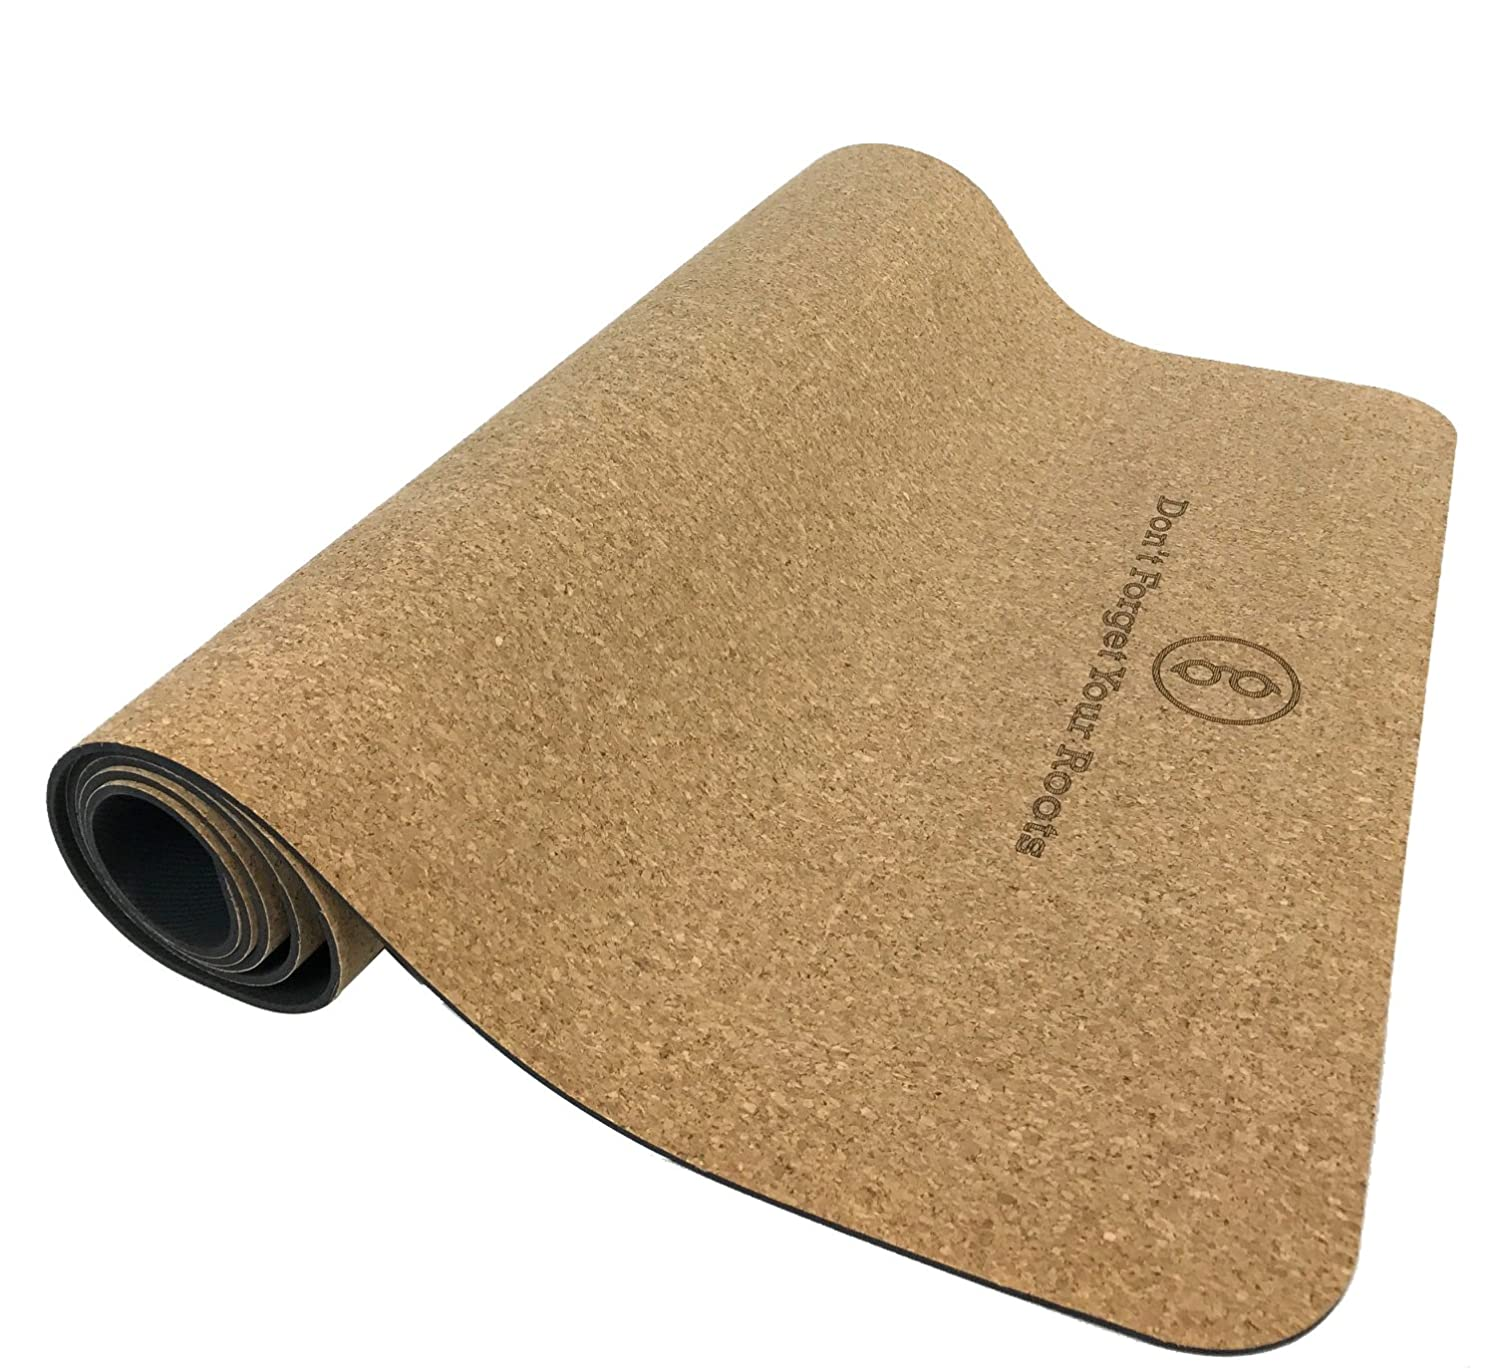 The Roots Yoga Mat travel product recommended by Maggie Schott on Pretty Progressive.